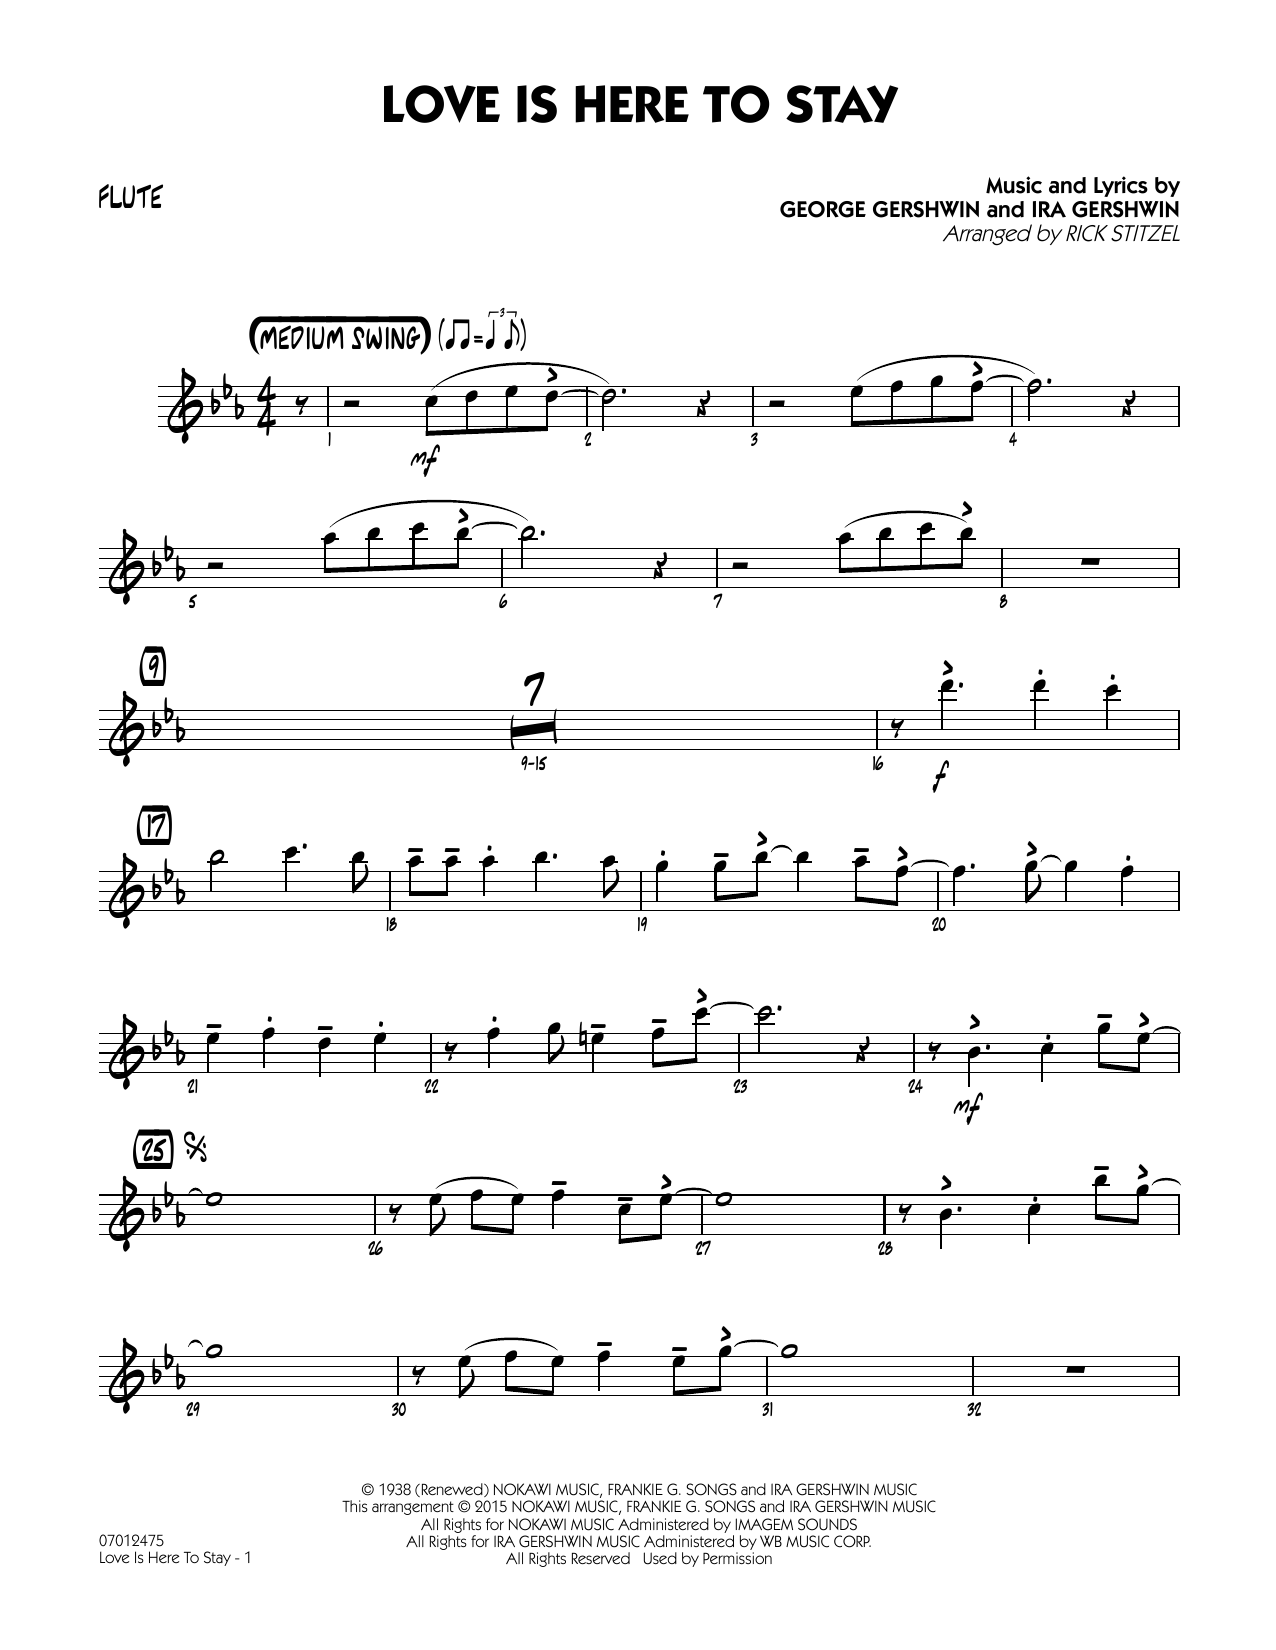 Love Is Here To Stay - Score & Parts by George Gershwin